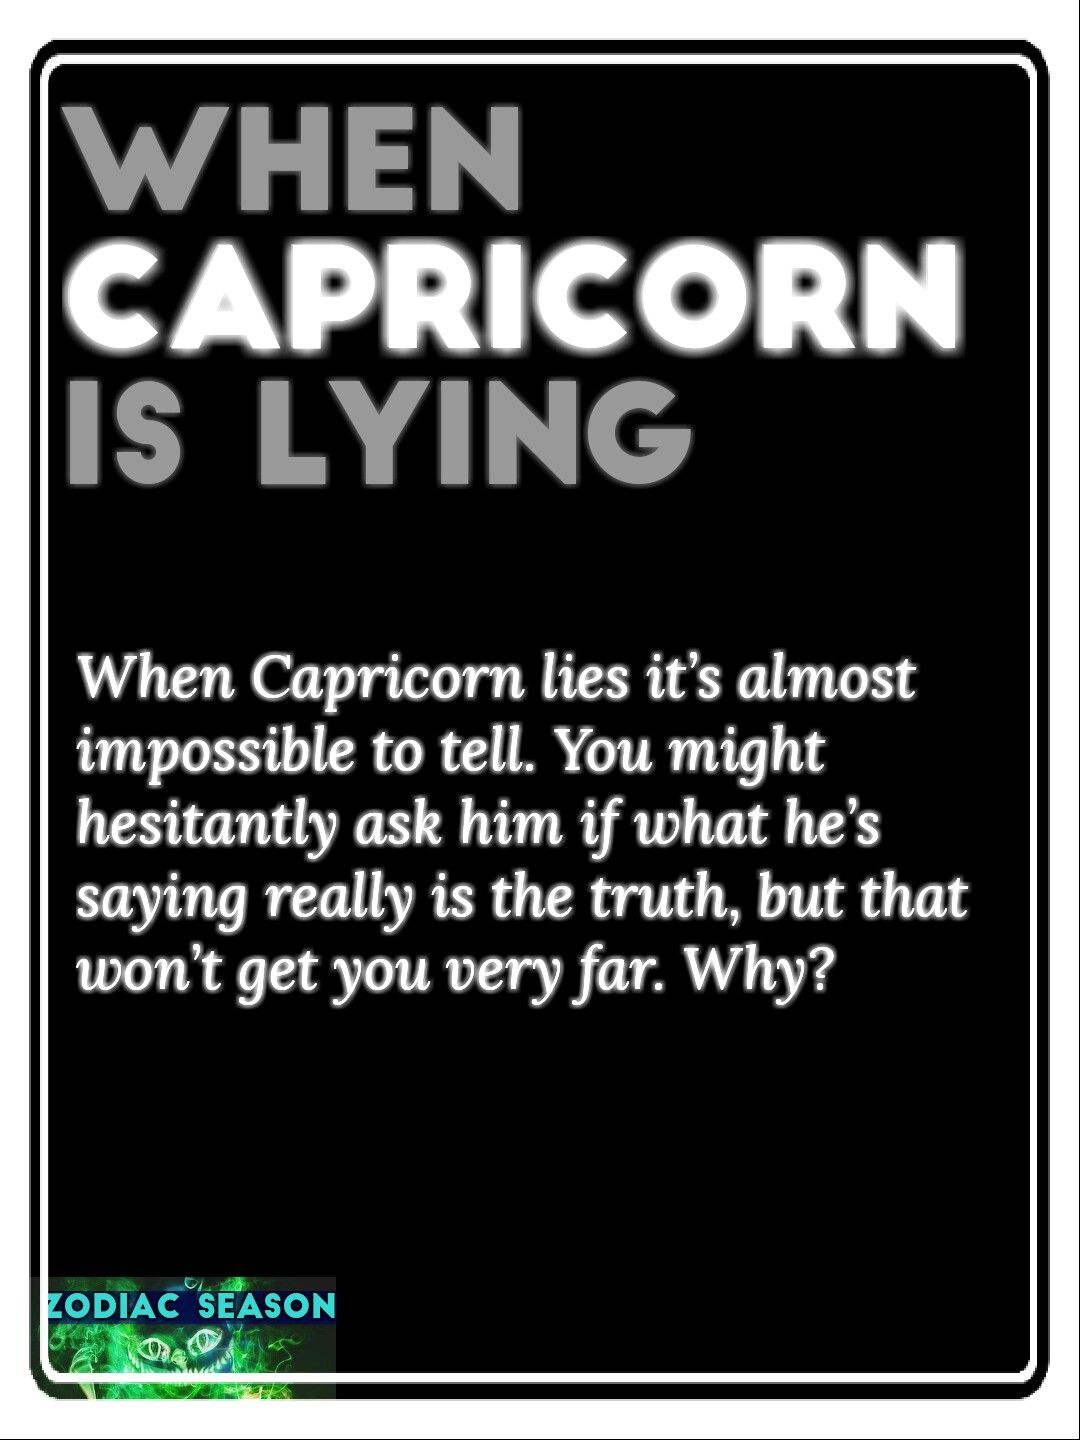 e4e477f9eb353033a4e7b04b985b4692 - How To Get A Capricorn Man To Ask You Out